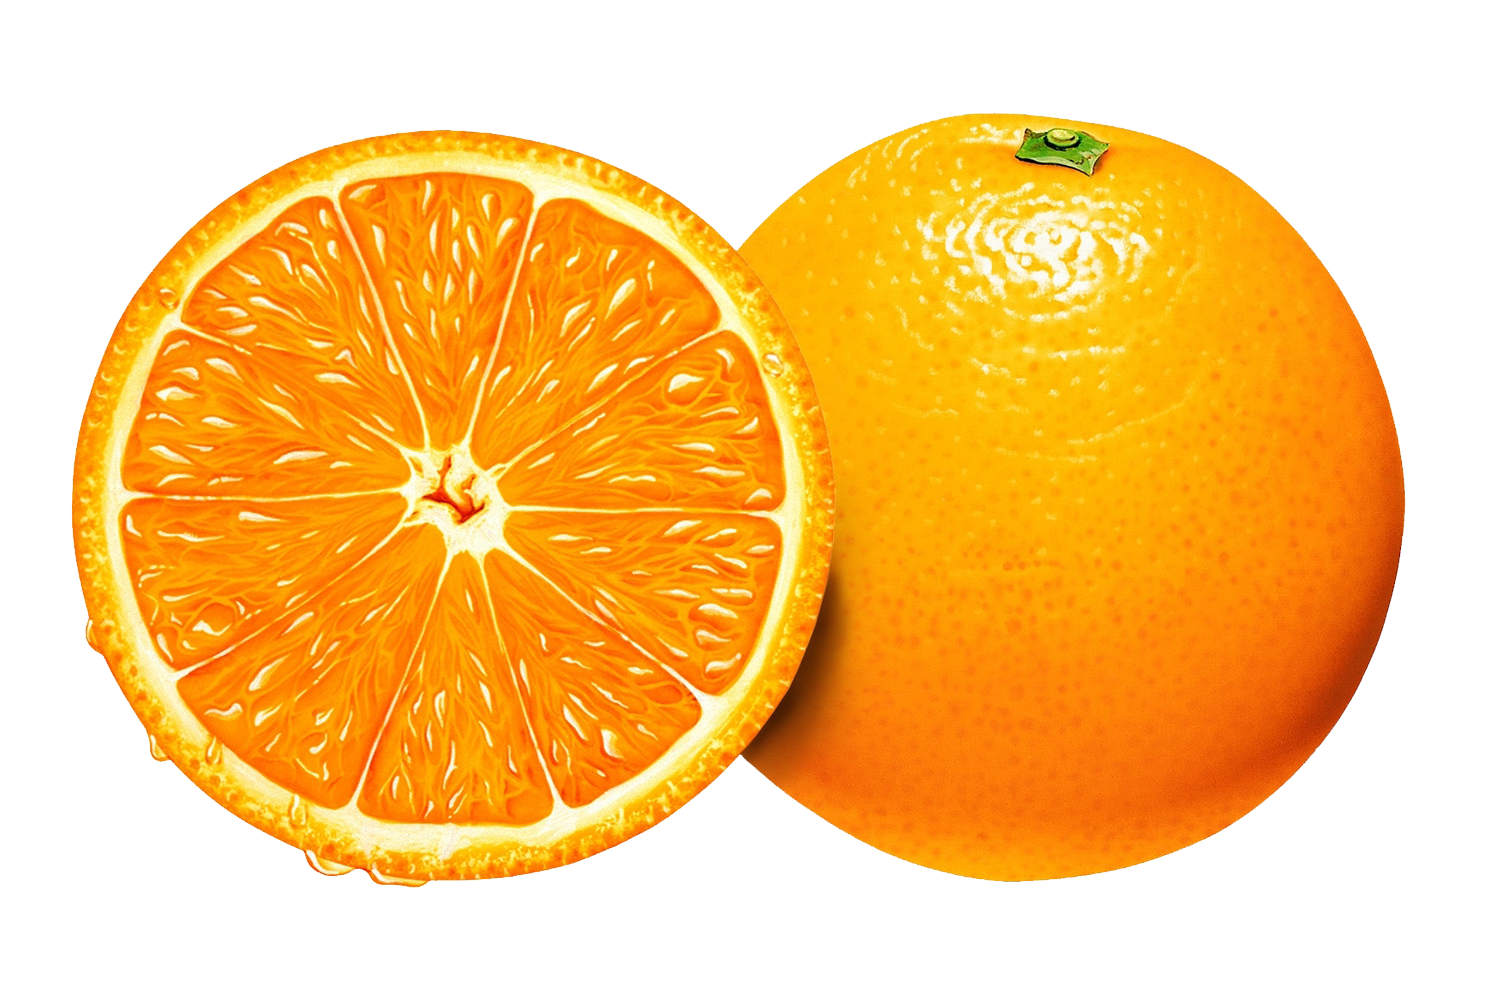 Orange PNG image, free download - Orange PNG